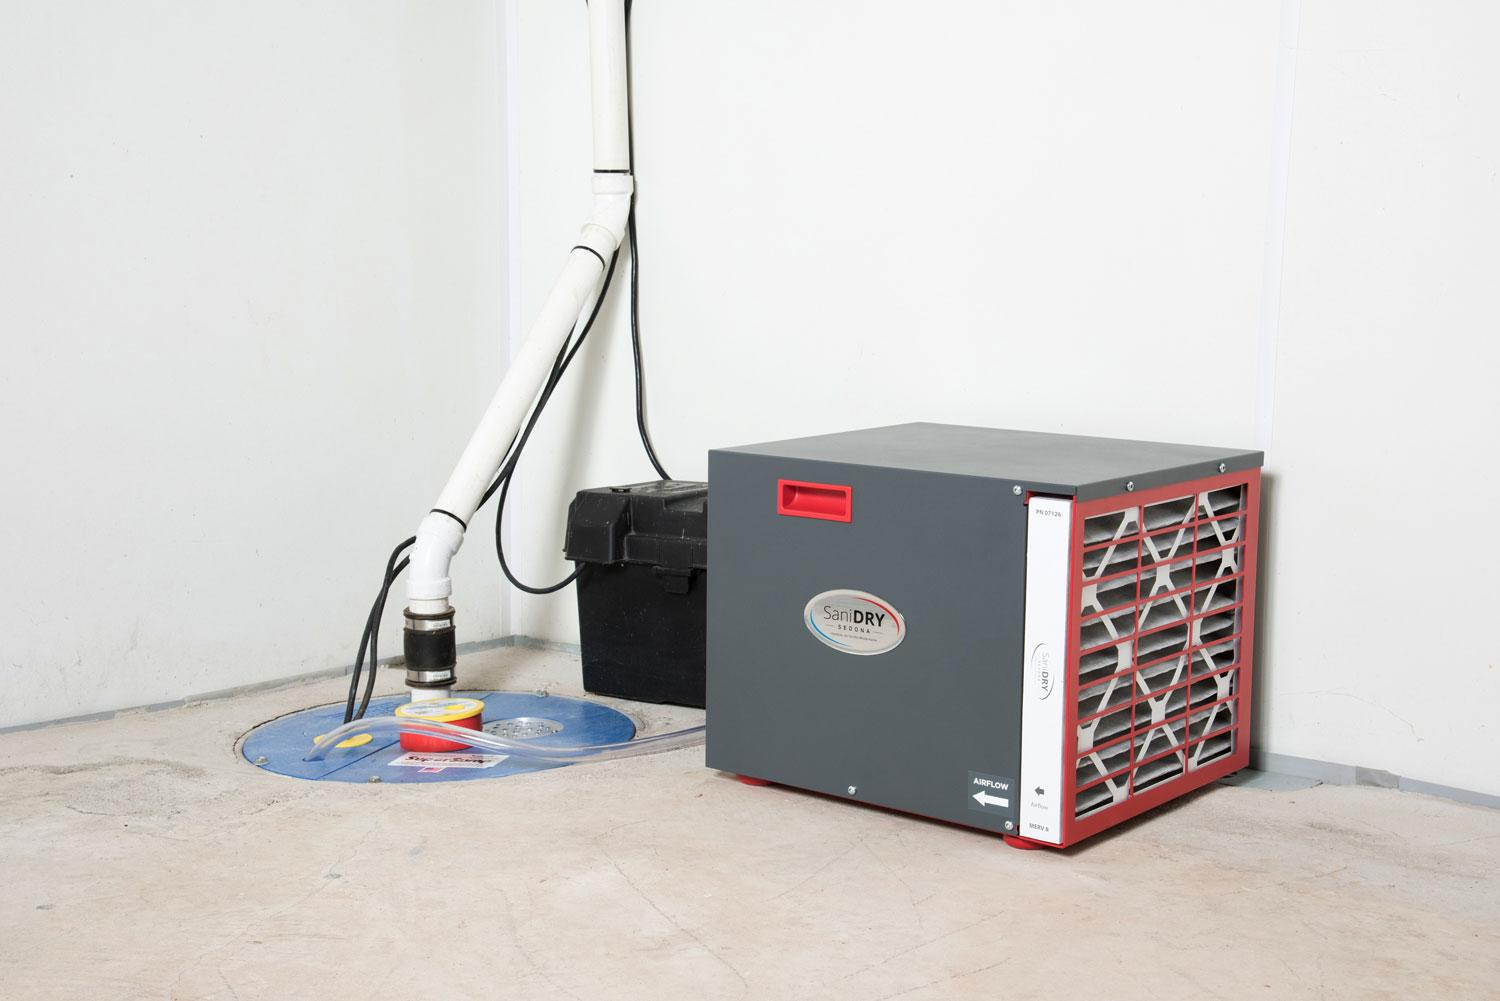 Waterproofing system, including professional dehumidifier